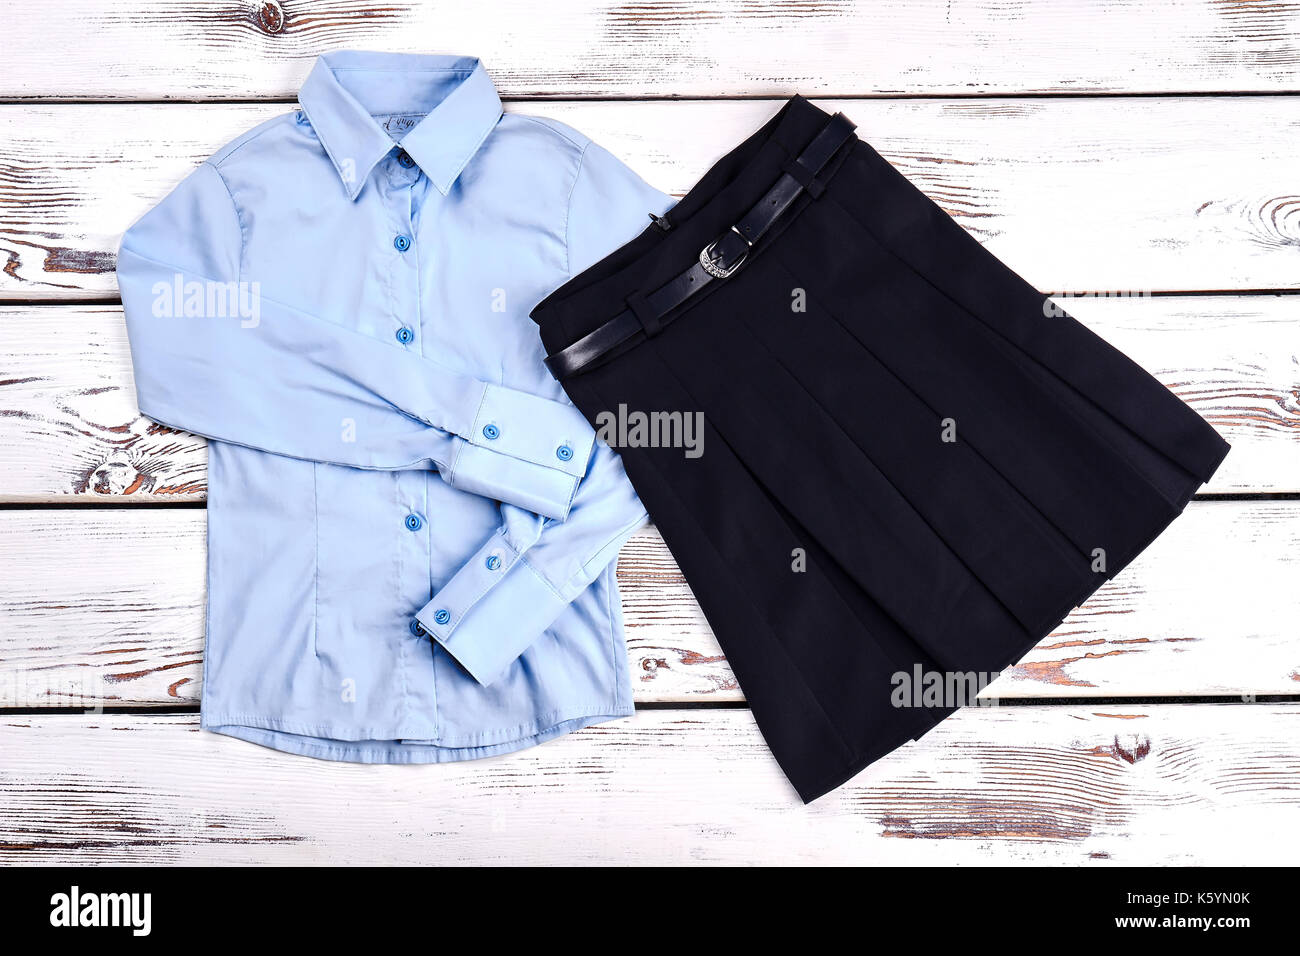 8cc9fd38e8 New collection of girls school uniform. Light blue blouse and black pleated  skirt for girls, top view. Girls school fashion outfit.